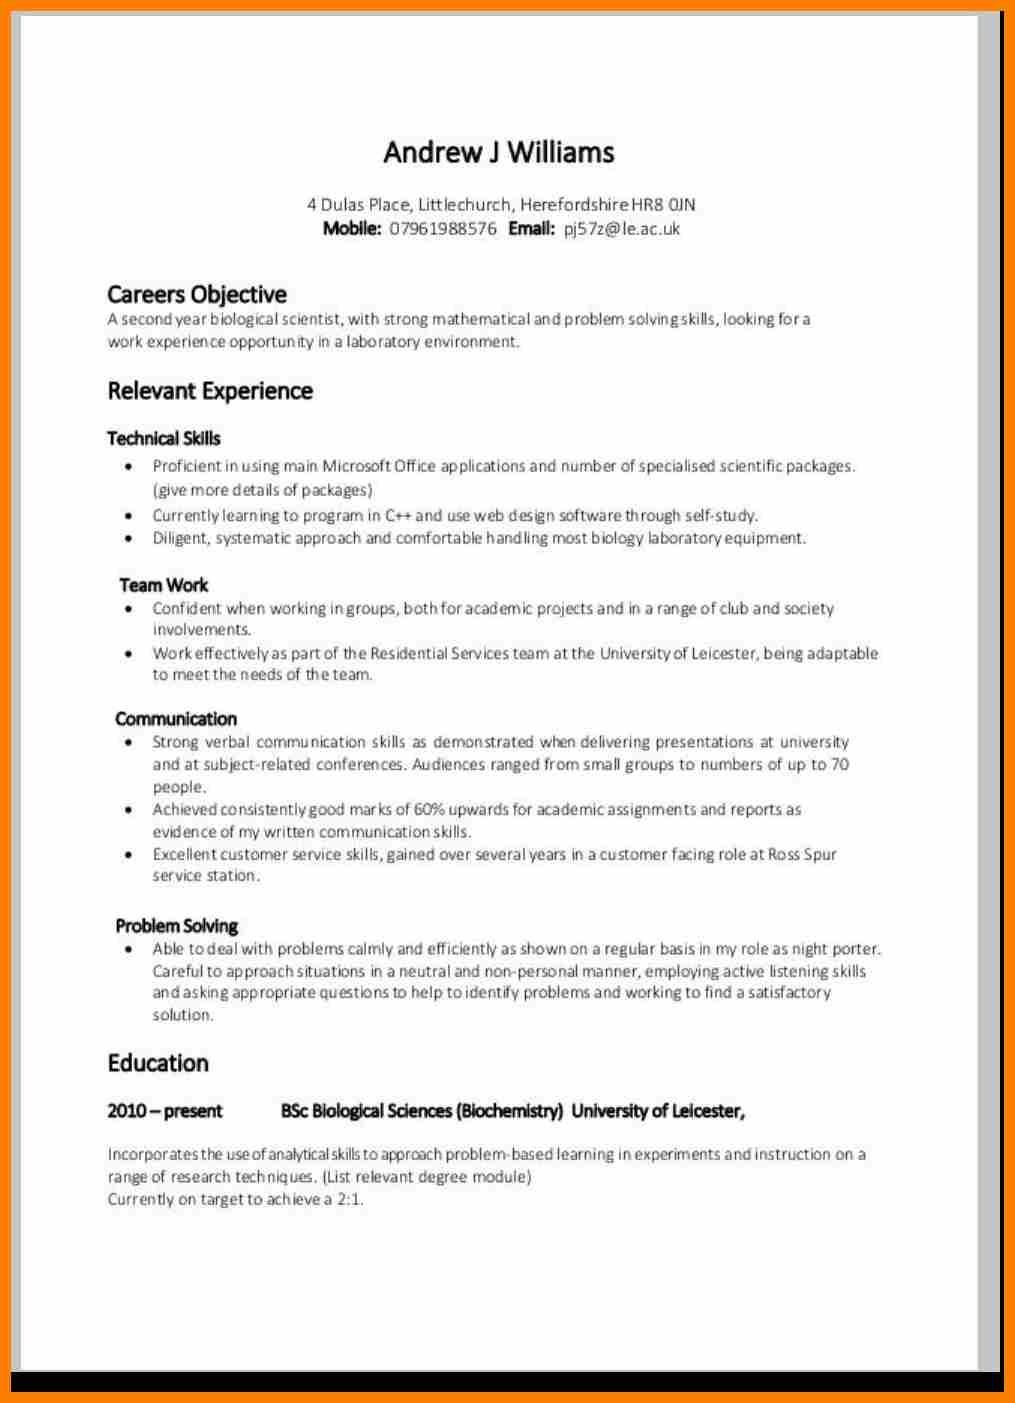 cv template for over resume format skills examples neutral objective dynamic templates Resume Neutral Resume Objective